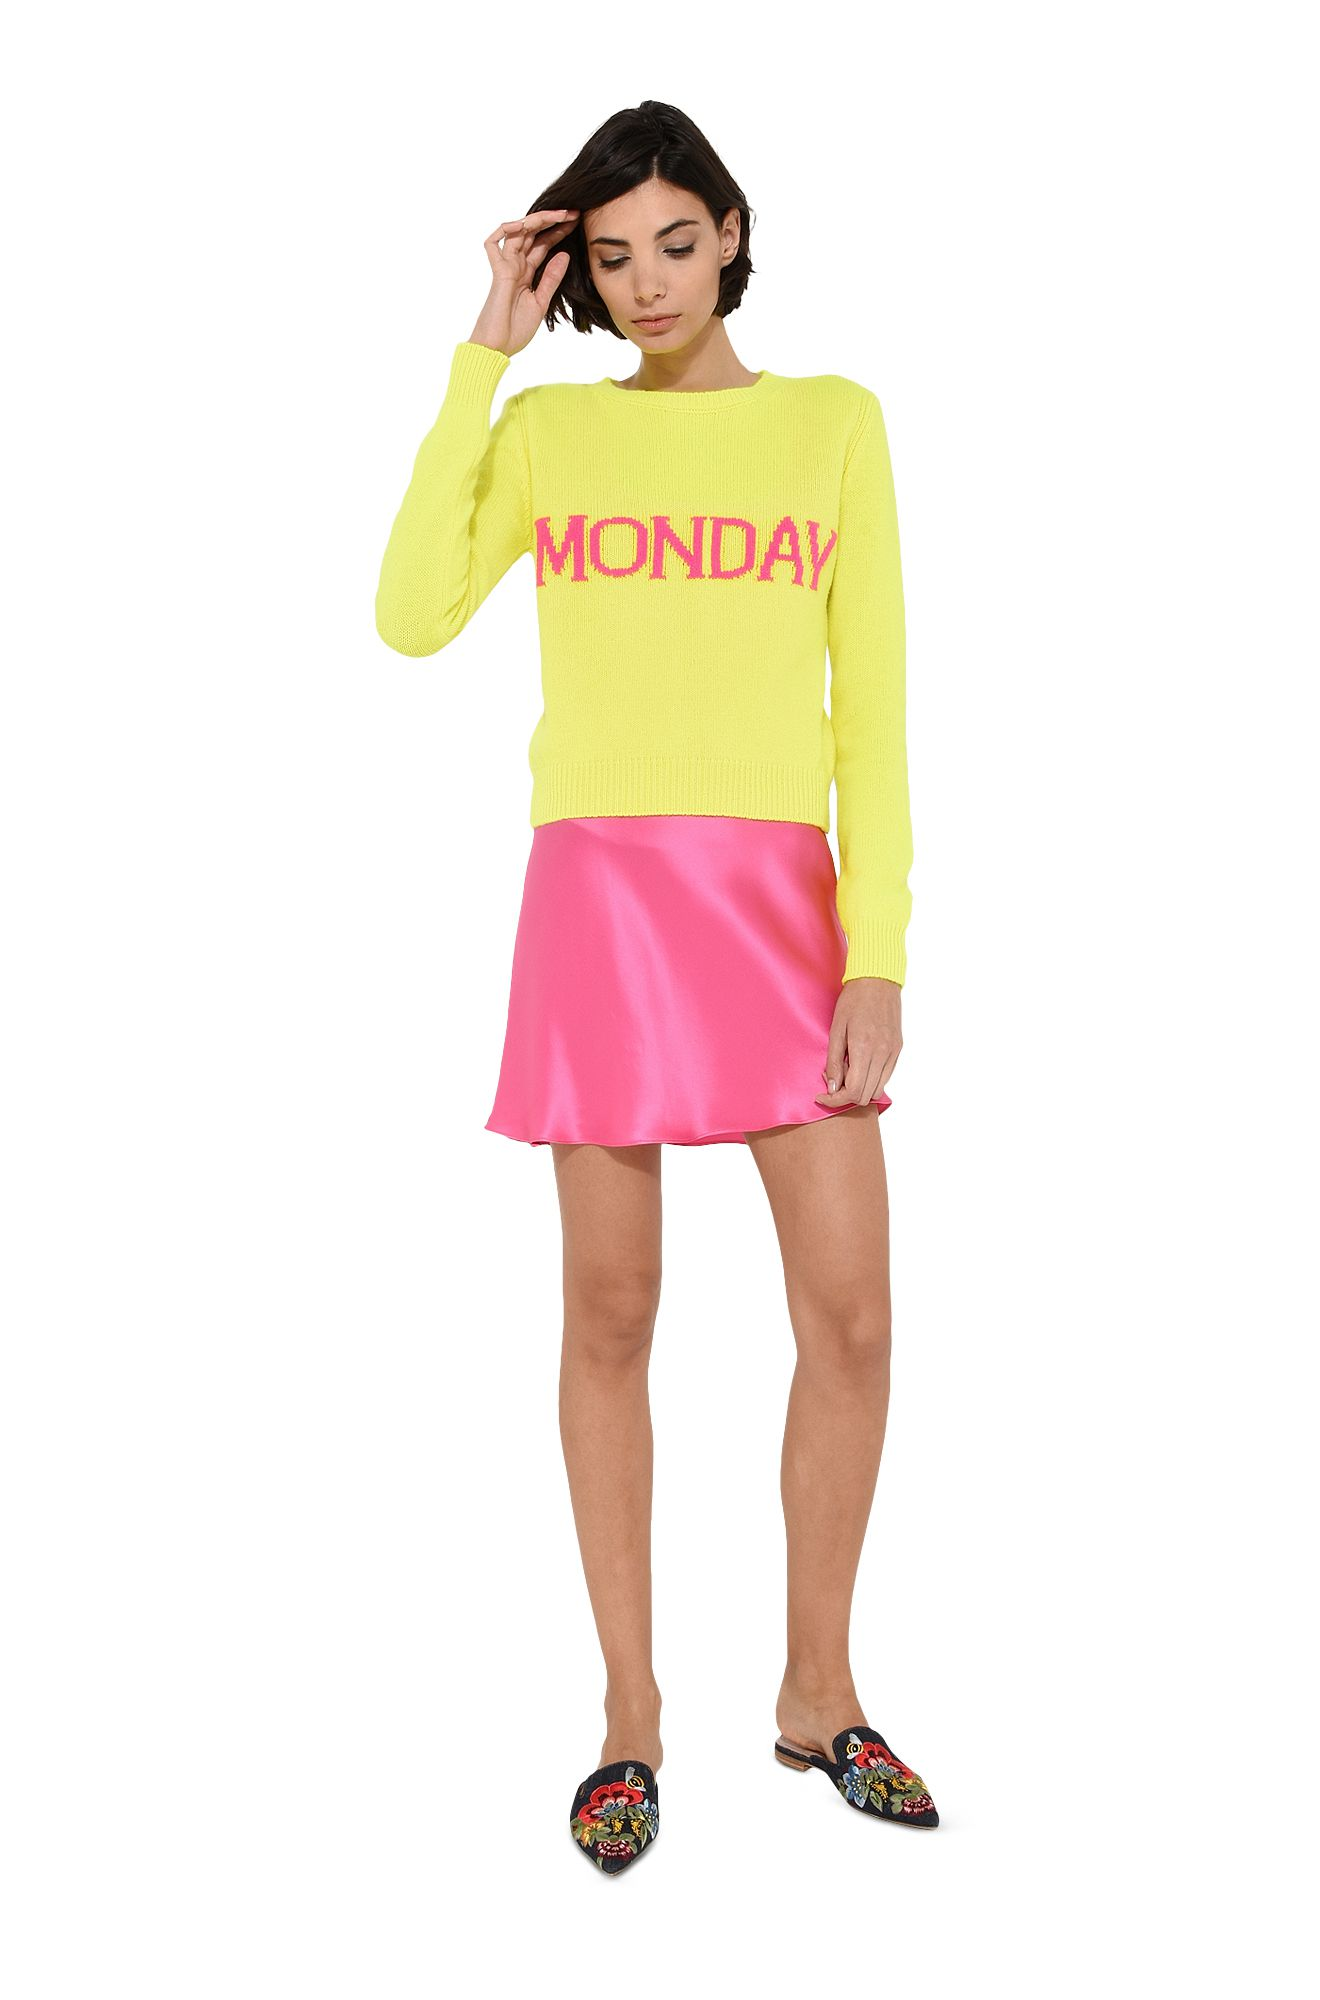 Monday fluo sweater